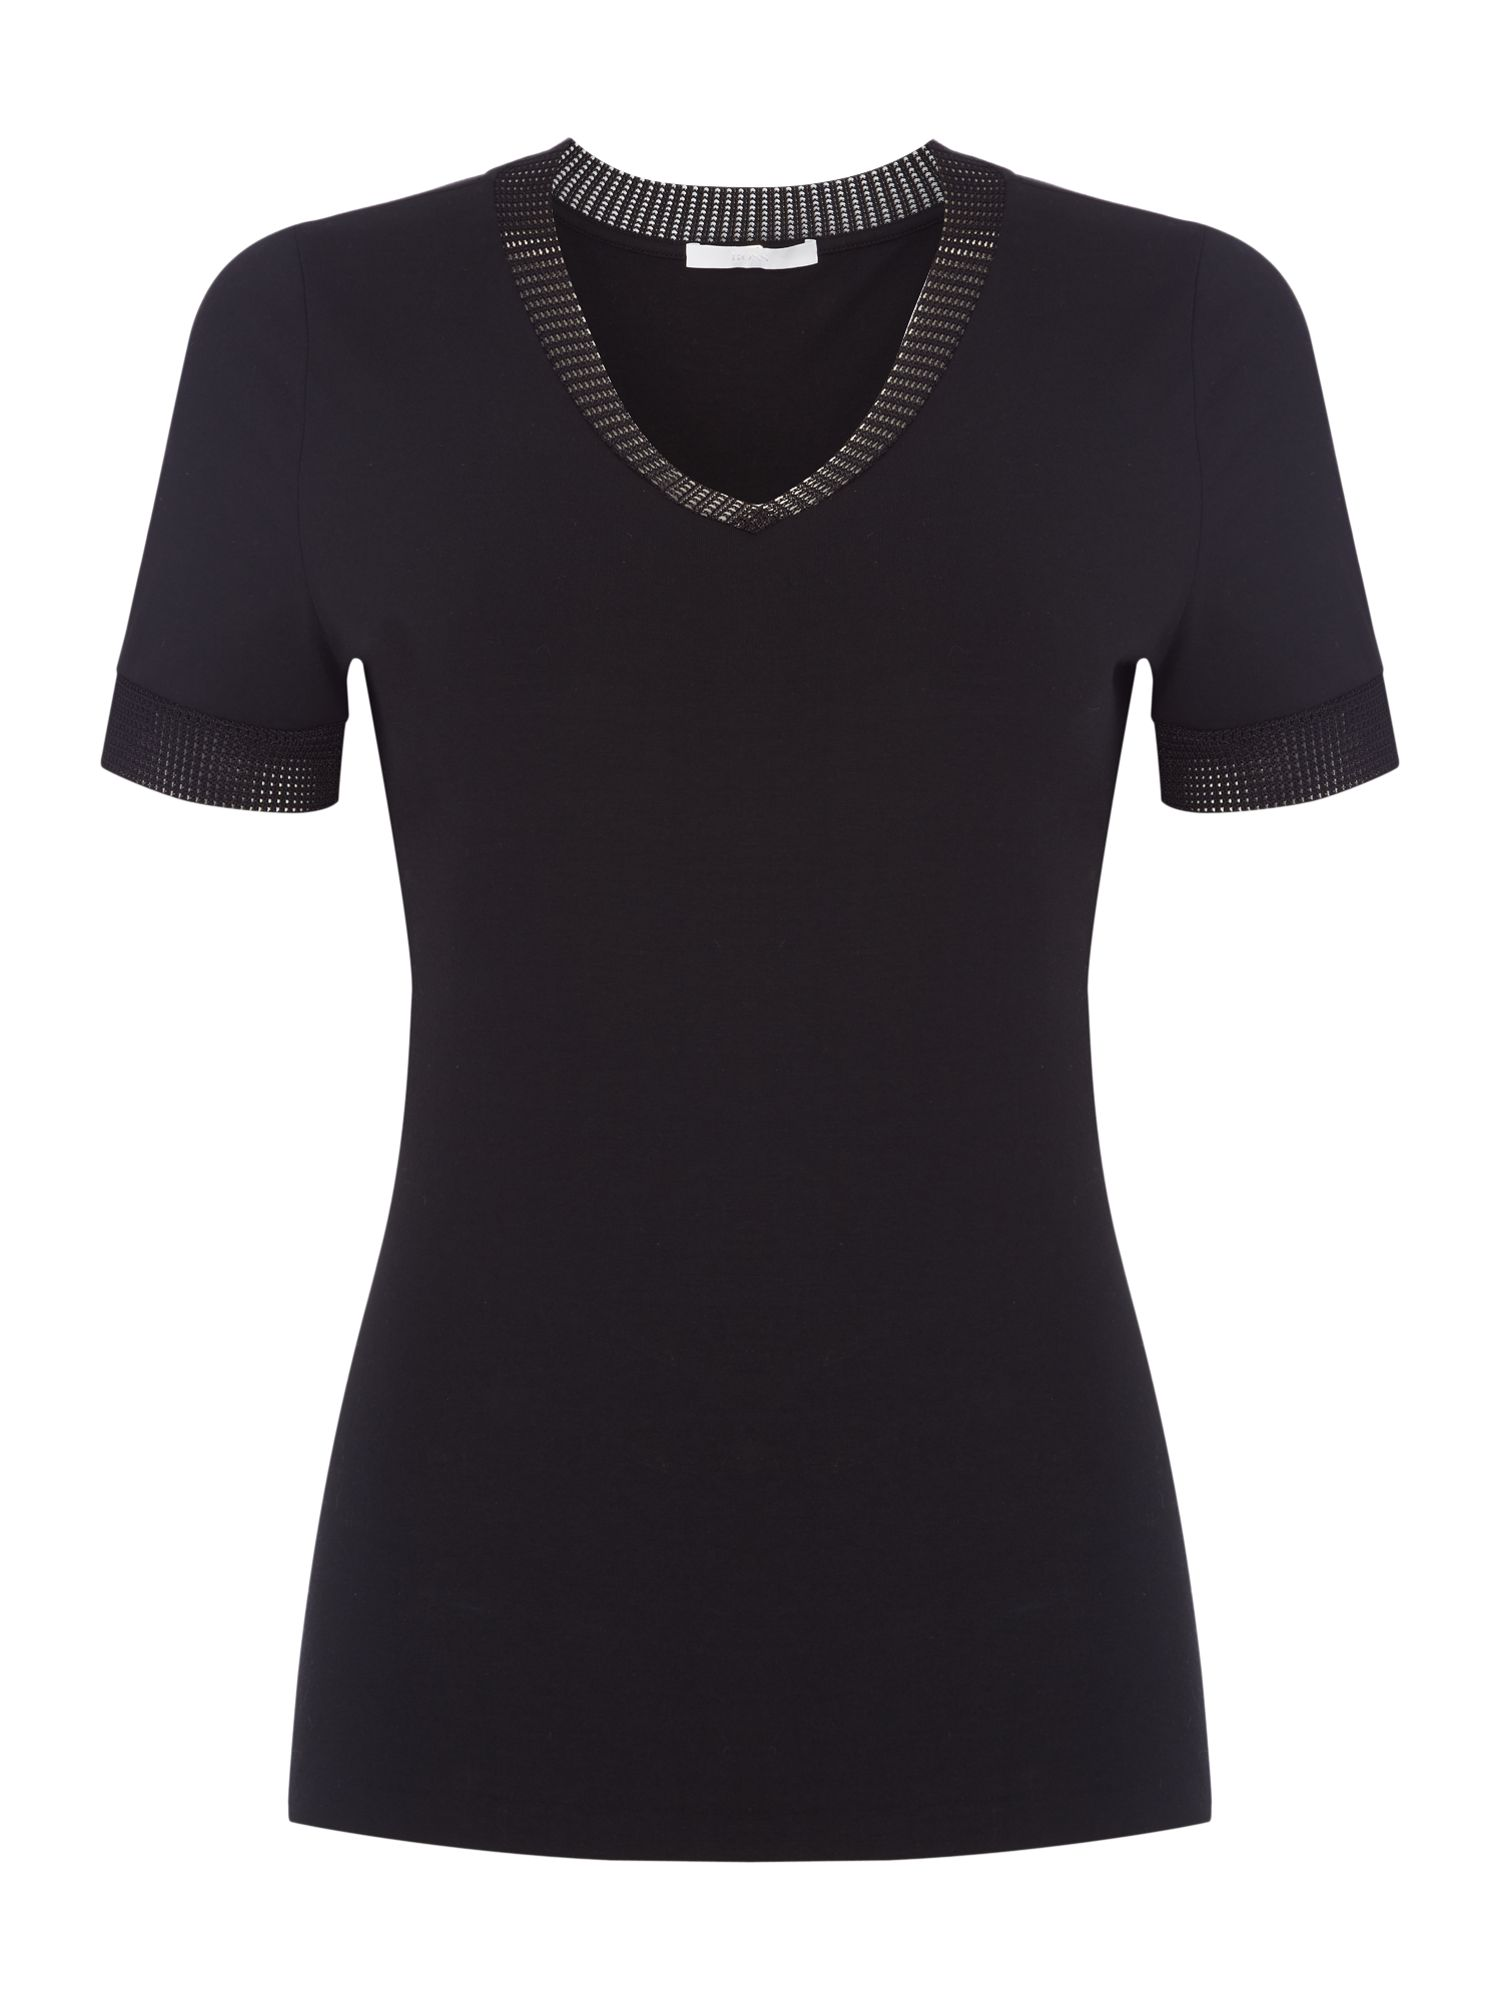 Hugo Boss Enzania sparkle edge top, Black